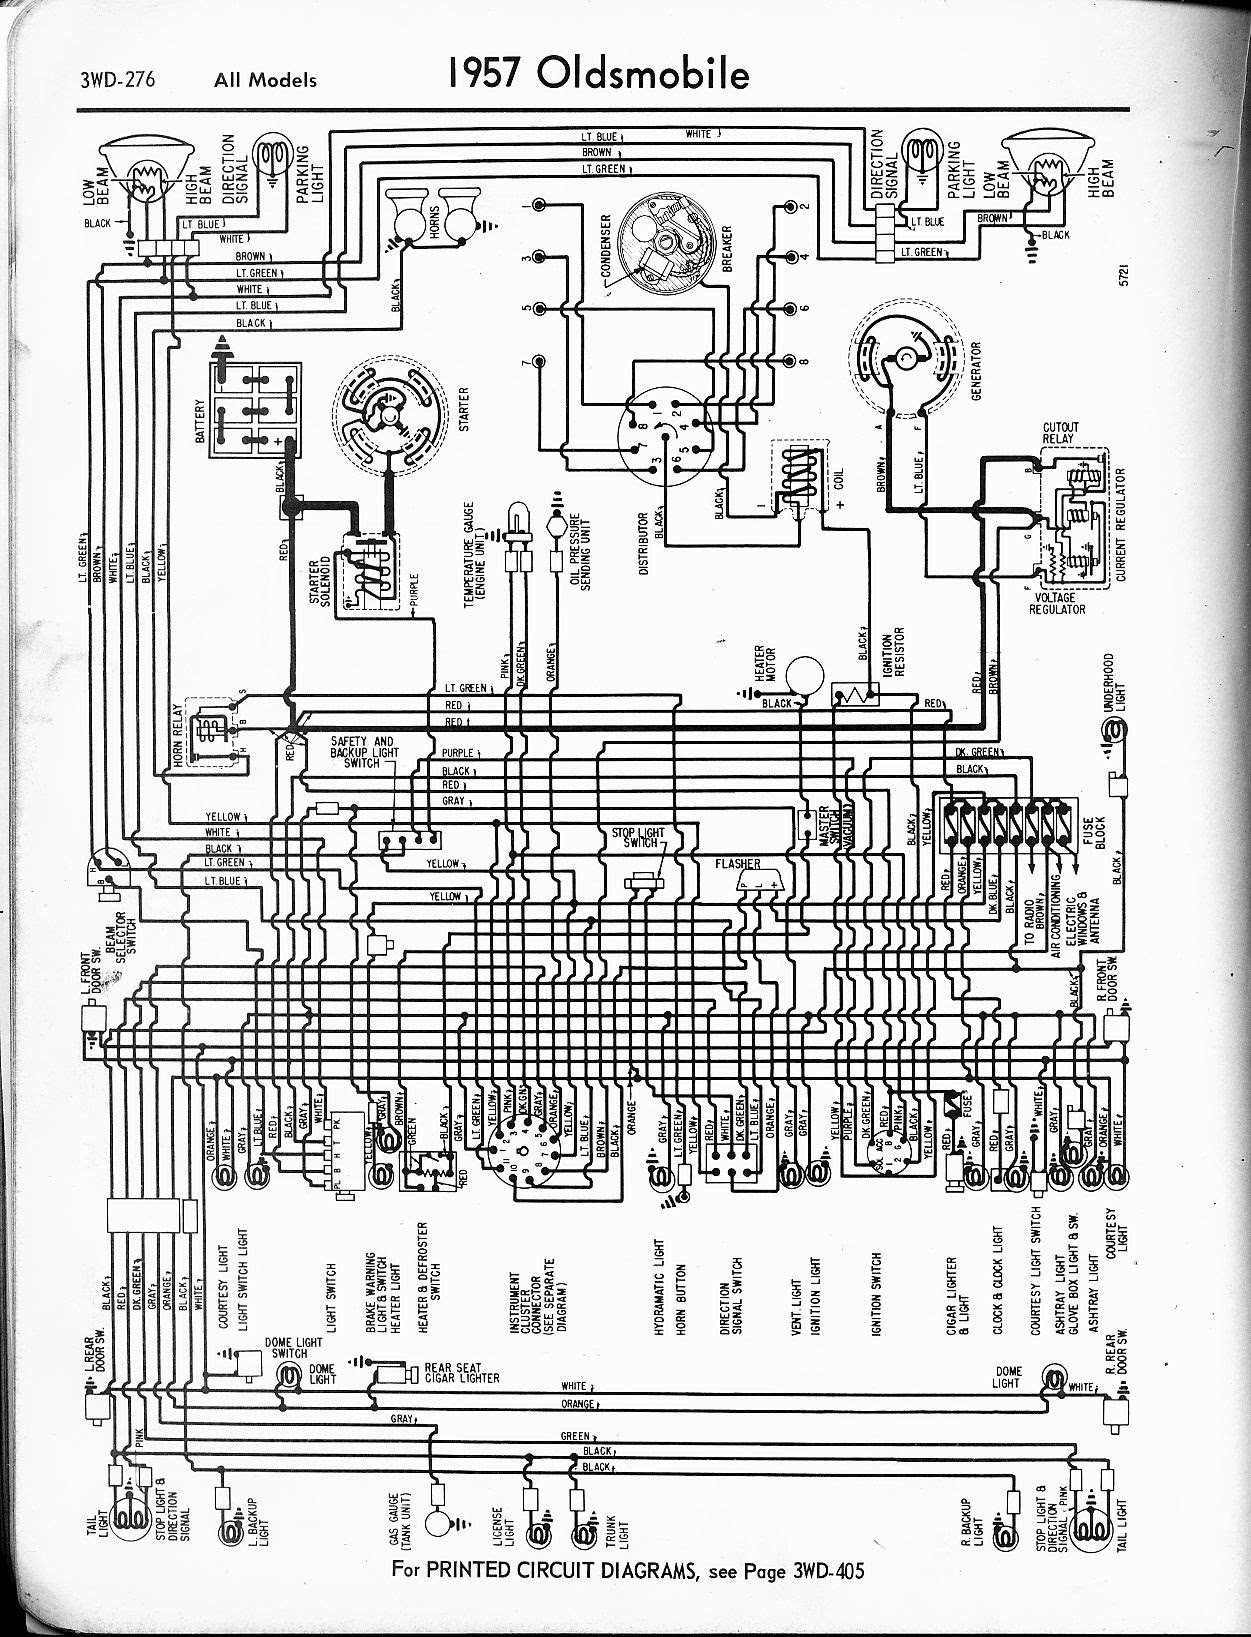 [SCHEMATICS_4CA]  DIAGRAM] Wiring Diagram 1994 Oldsmobile FULL Version HD Quality 1994  Oldsmobile - TAPEWIRING.CAMPUSBAC.FR | Wiring Diagram Oldsmobile 88 |  | tapewiring.campusbac.fr